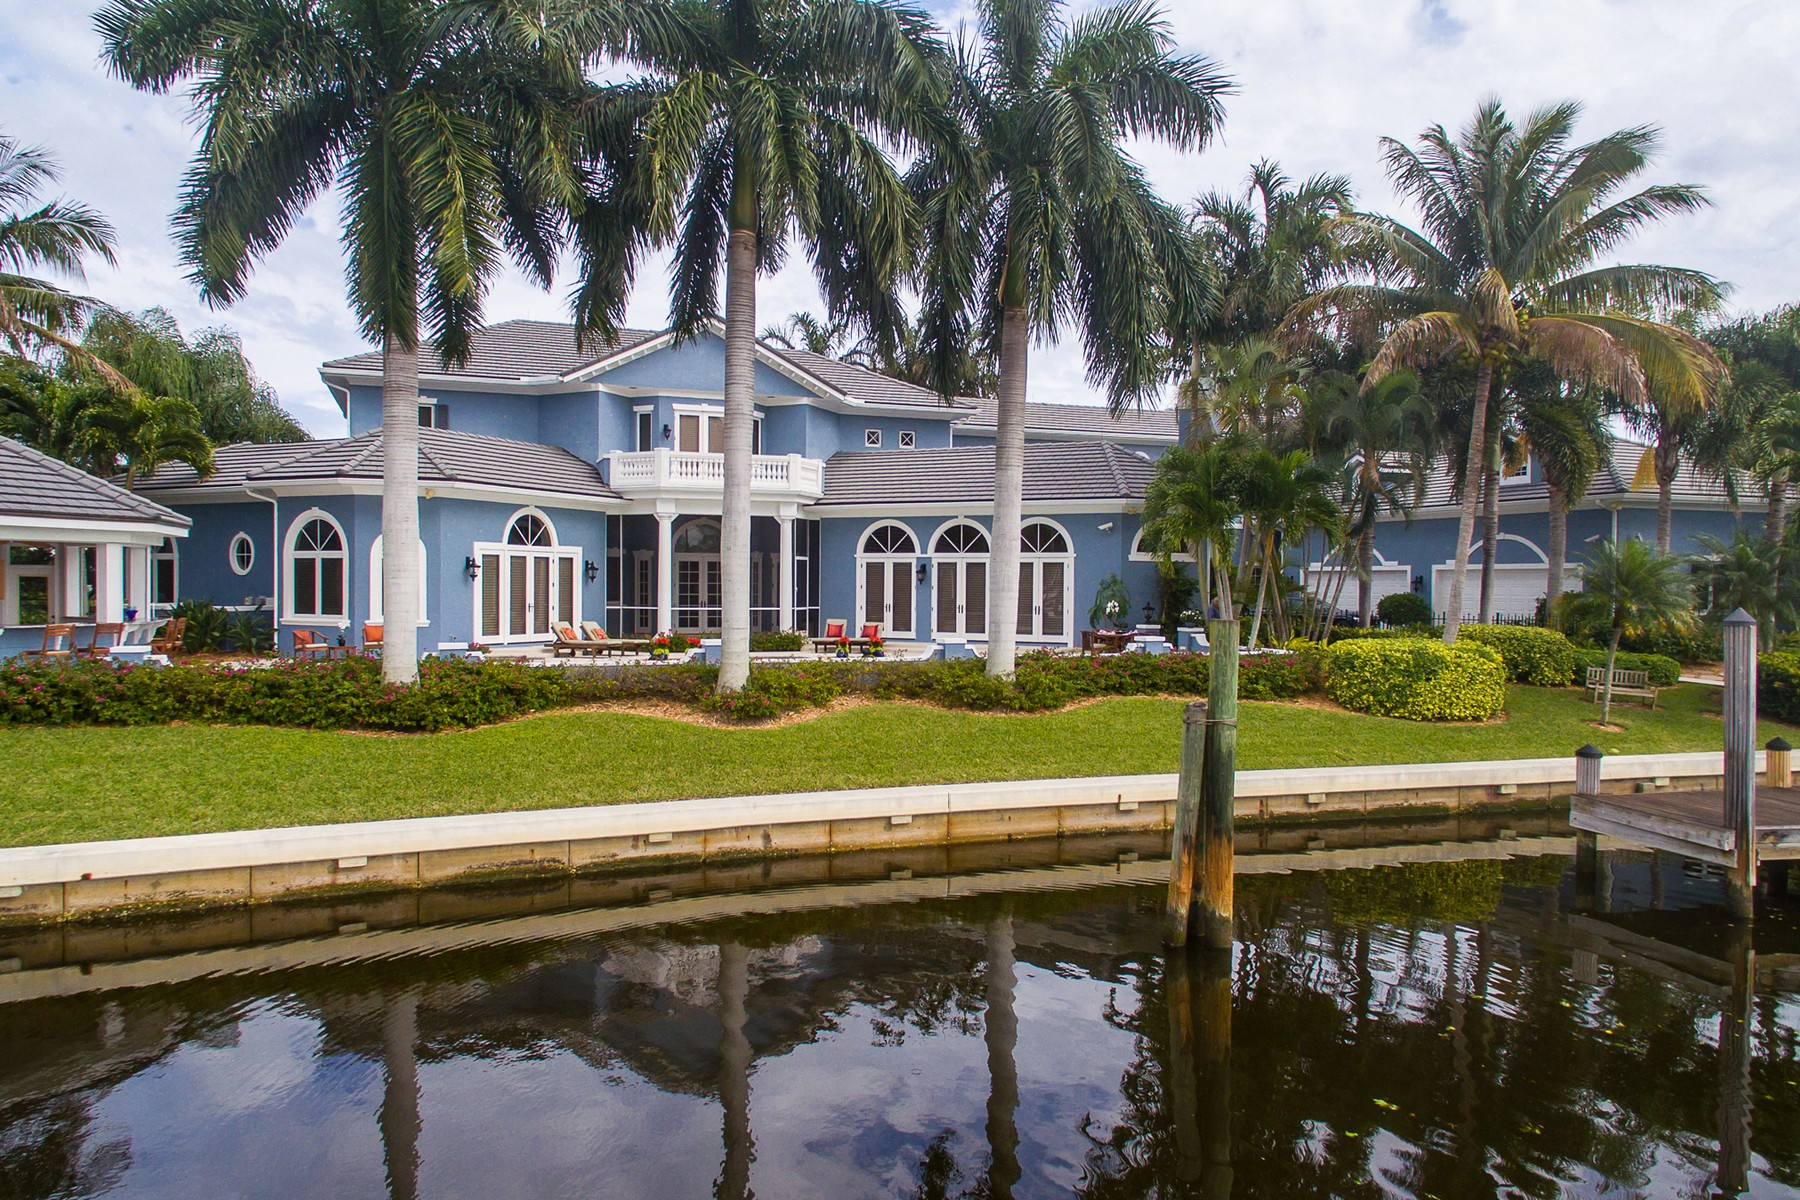 Single Family Home for Sale at Yachtsman Dream Home in the Moorings 101 Springline Drive Vero Beach, Florida, 32963 United States